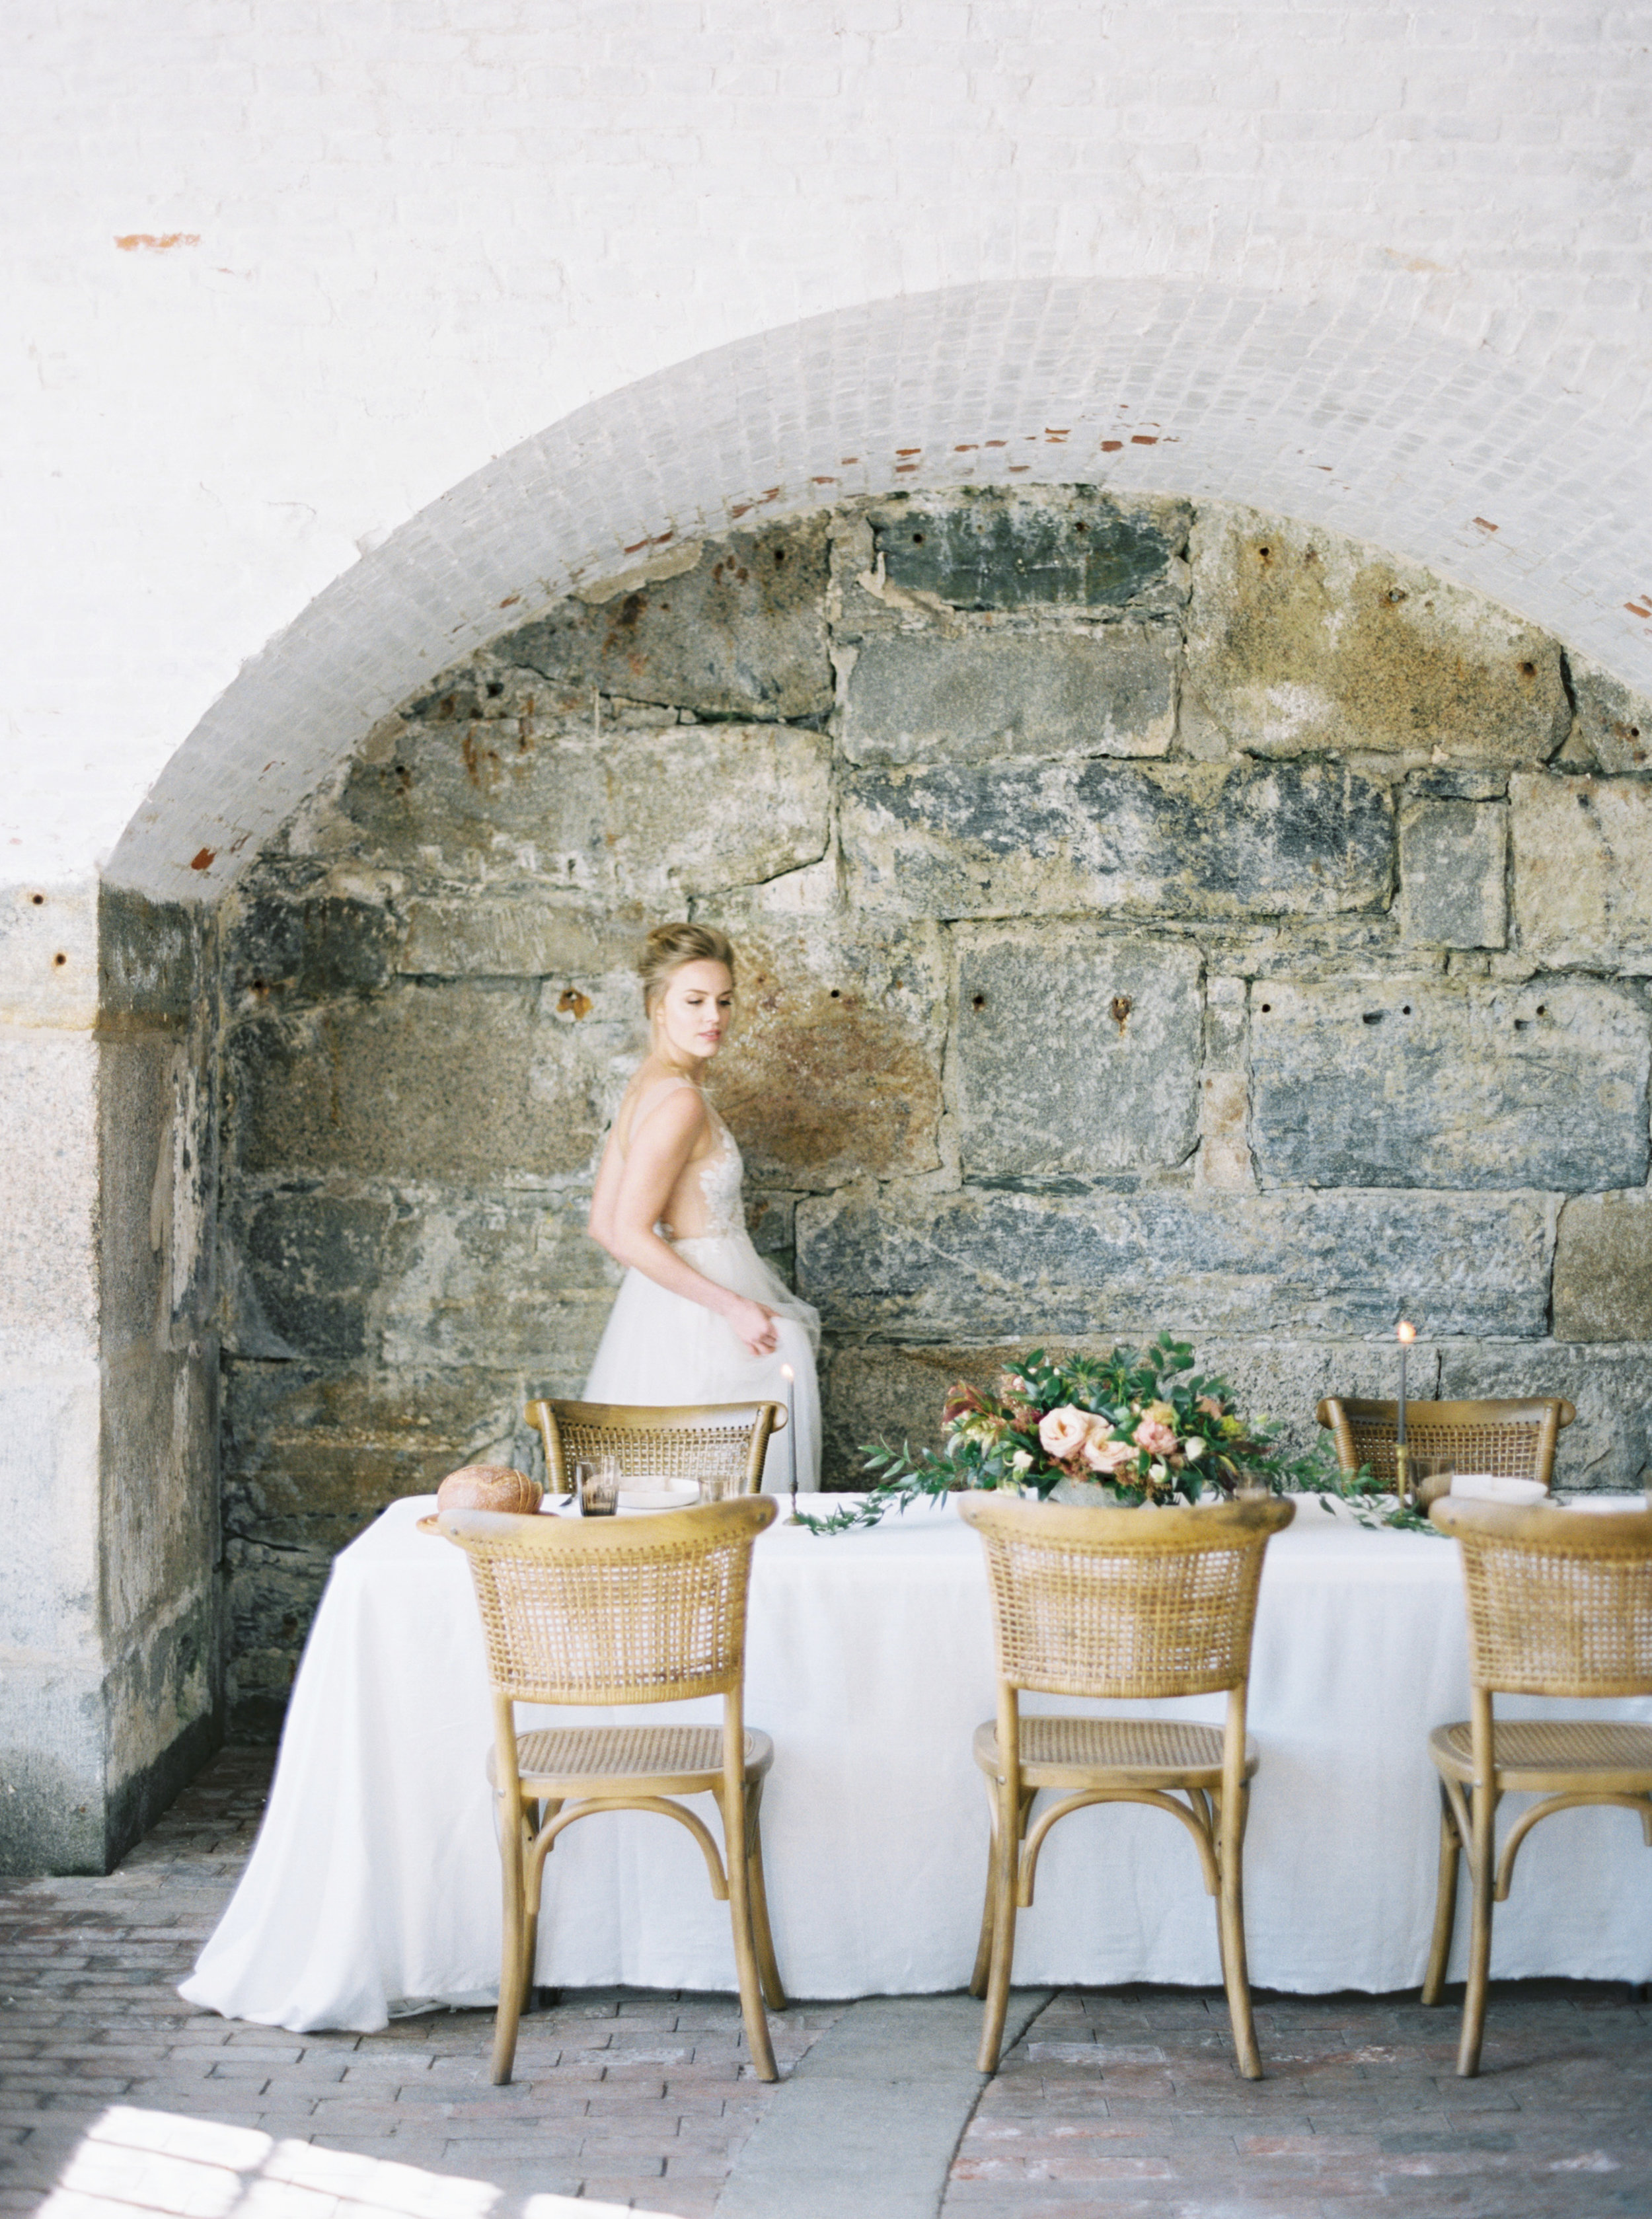 If your significant other wears an uniform, why not pay homage and get married at a real Fort? Photo: Elizabeth LaDuca, Fort Adams, Newport, RI